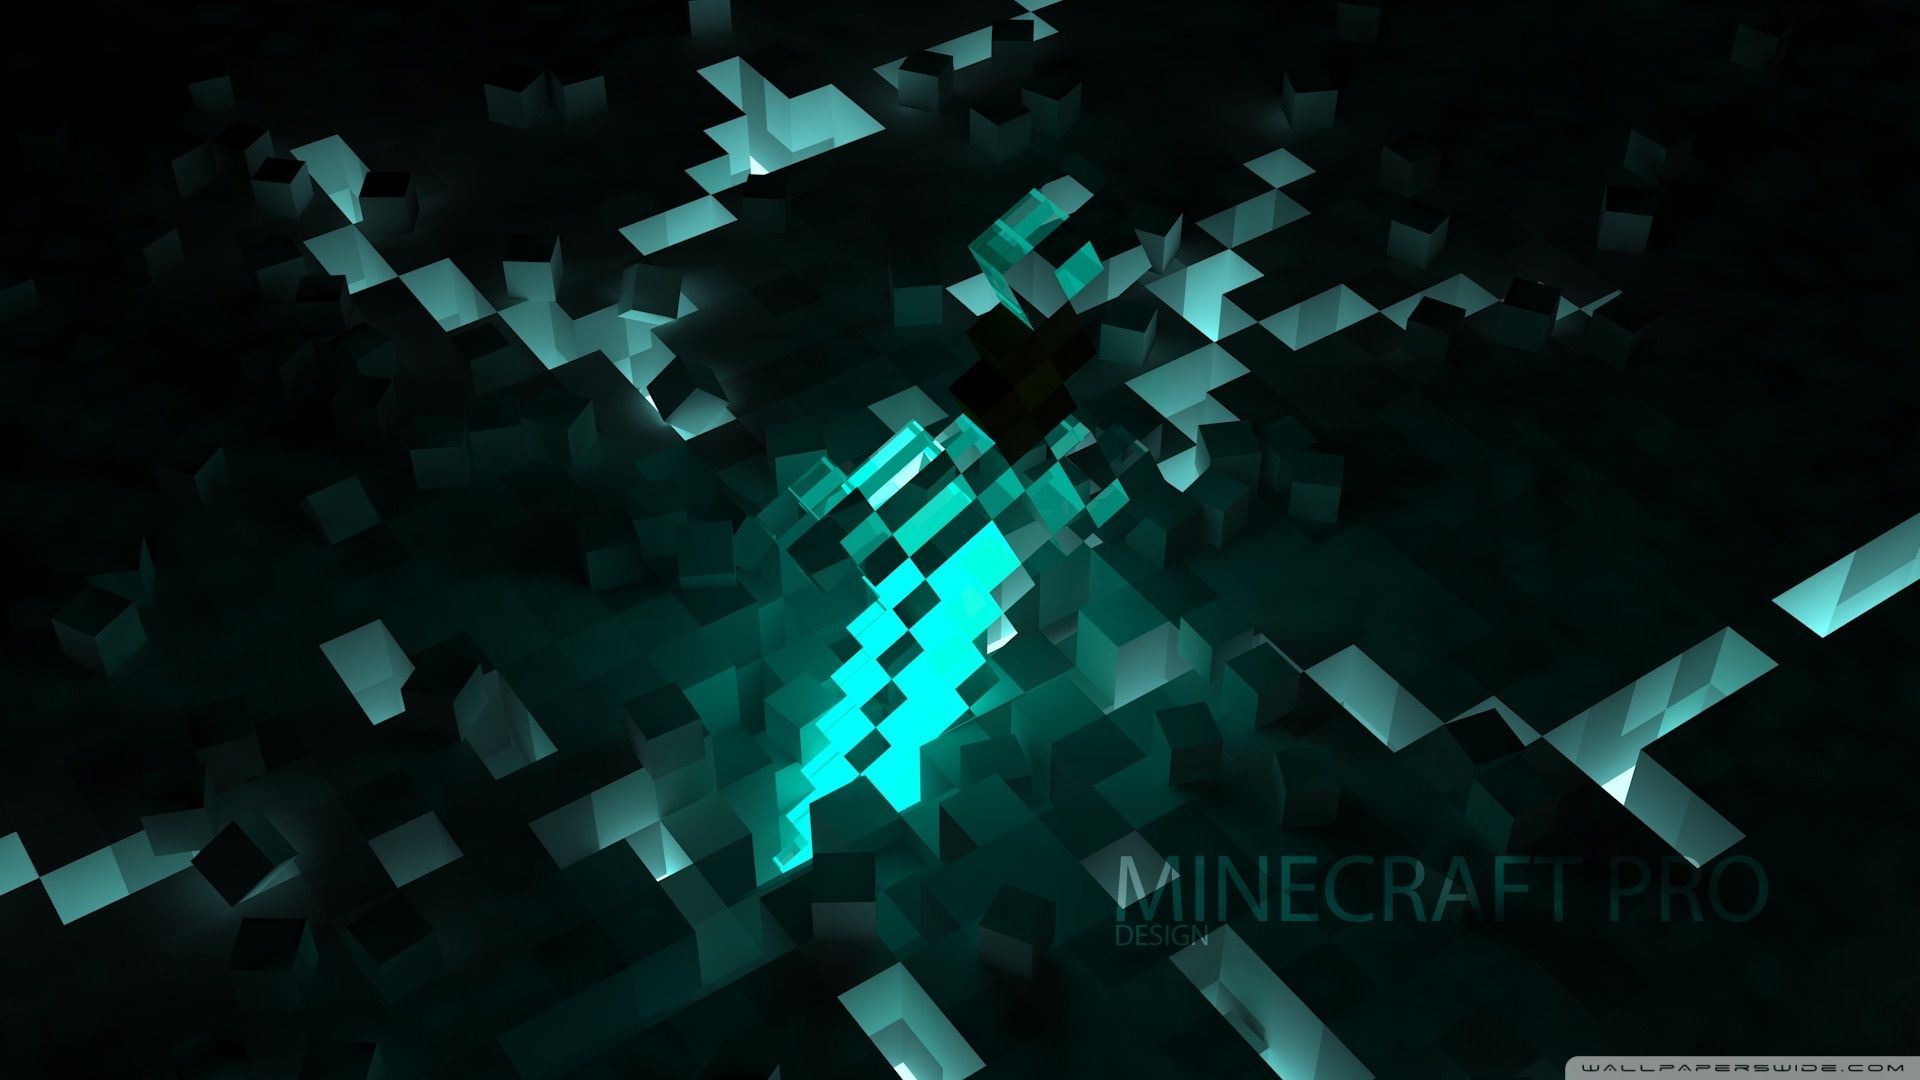 Hd Minecraft Wallpapers X Group With Items